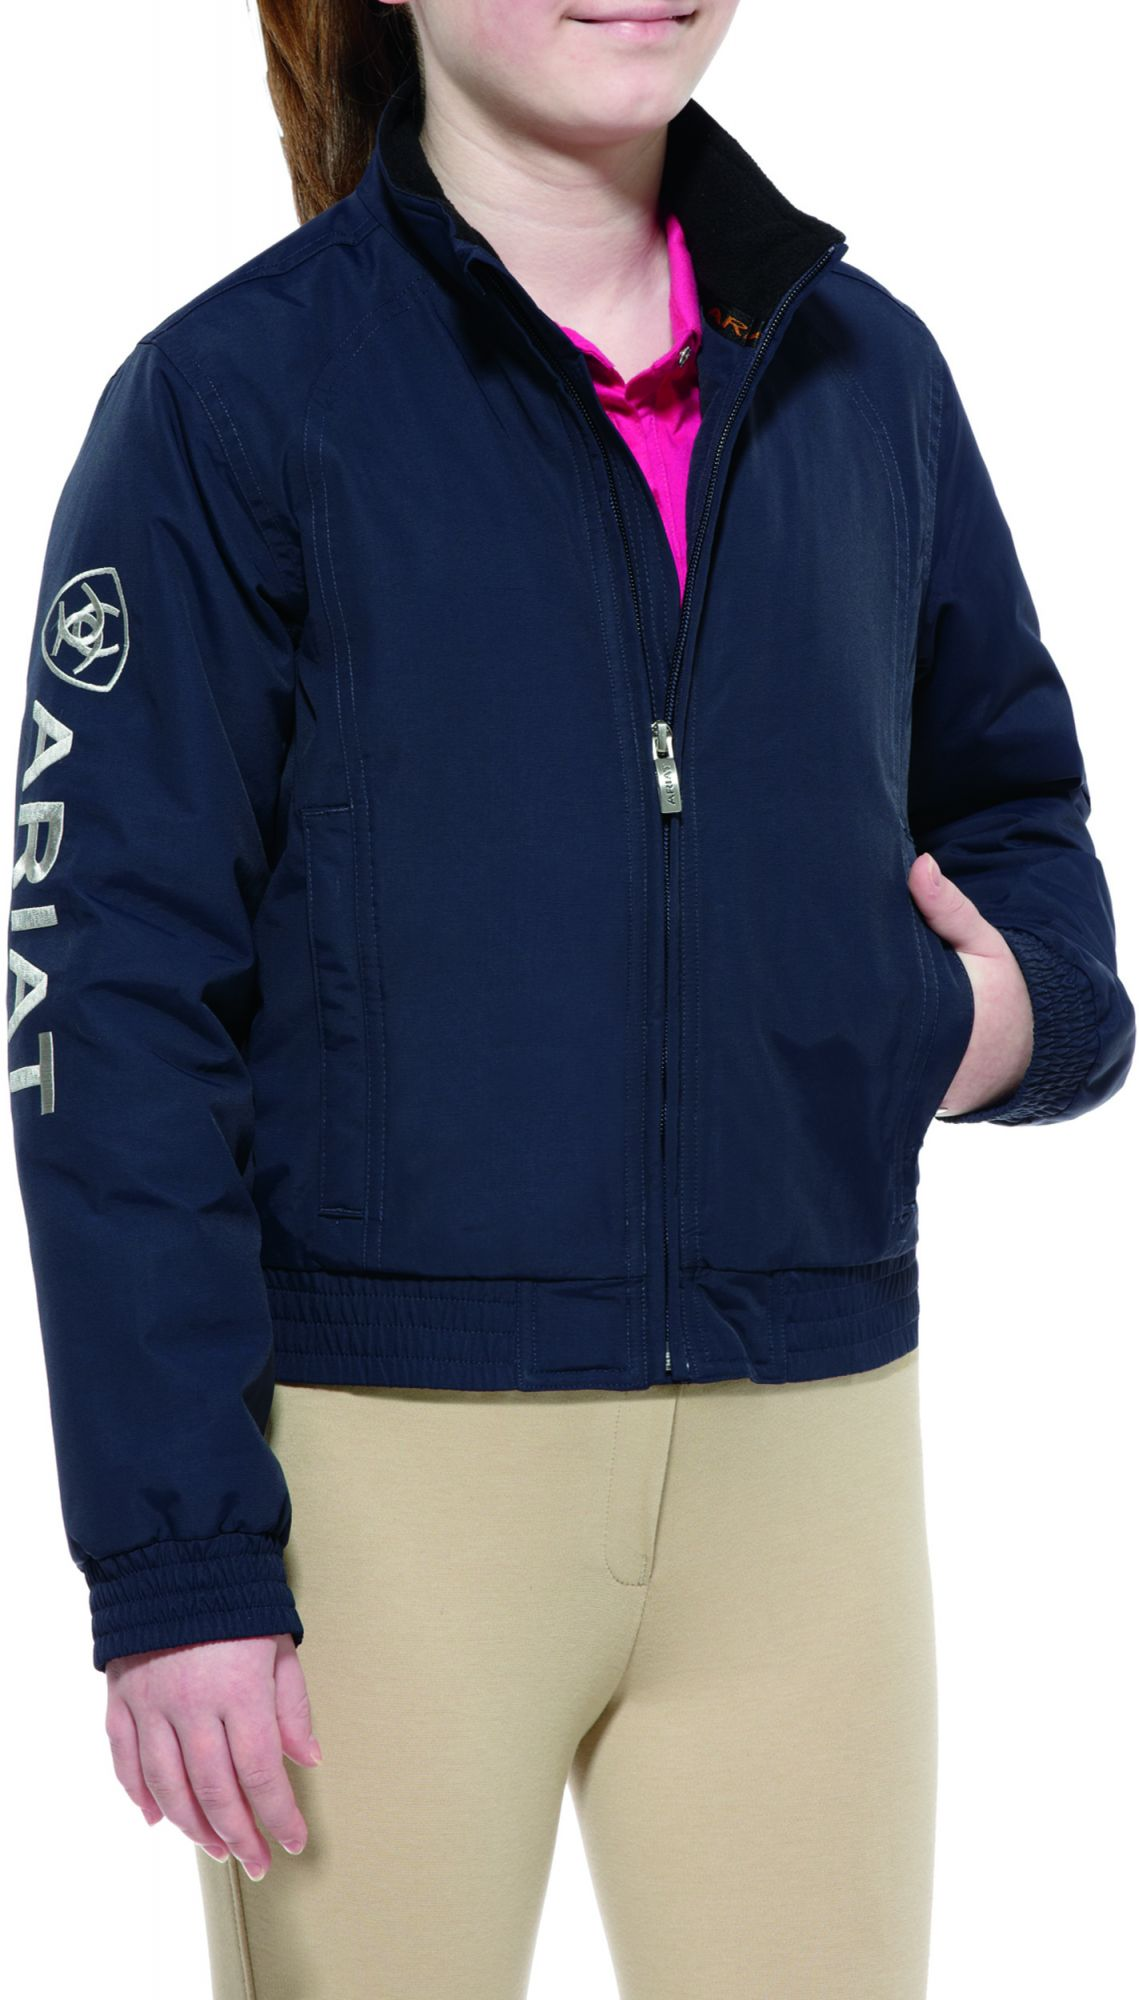 Ariat Youth Team Stable Jacket Navy Childrens Clothing